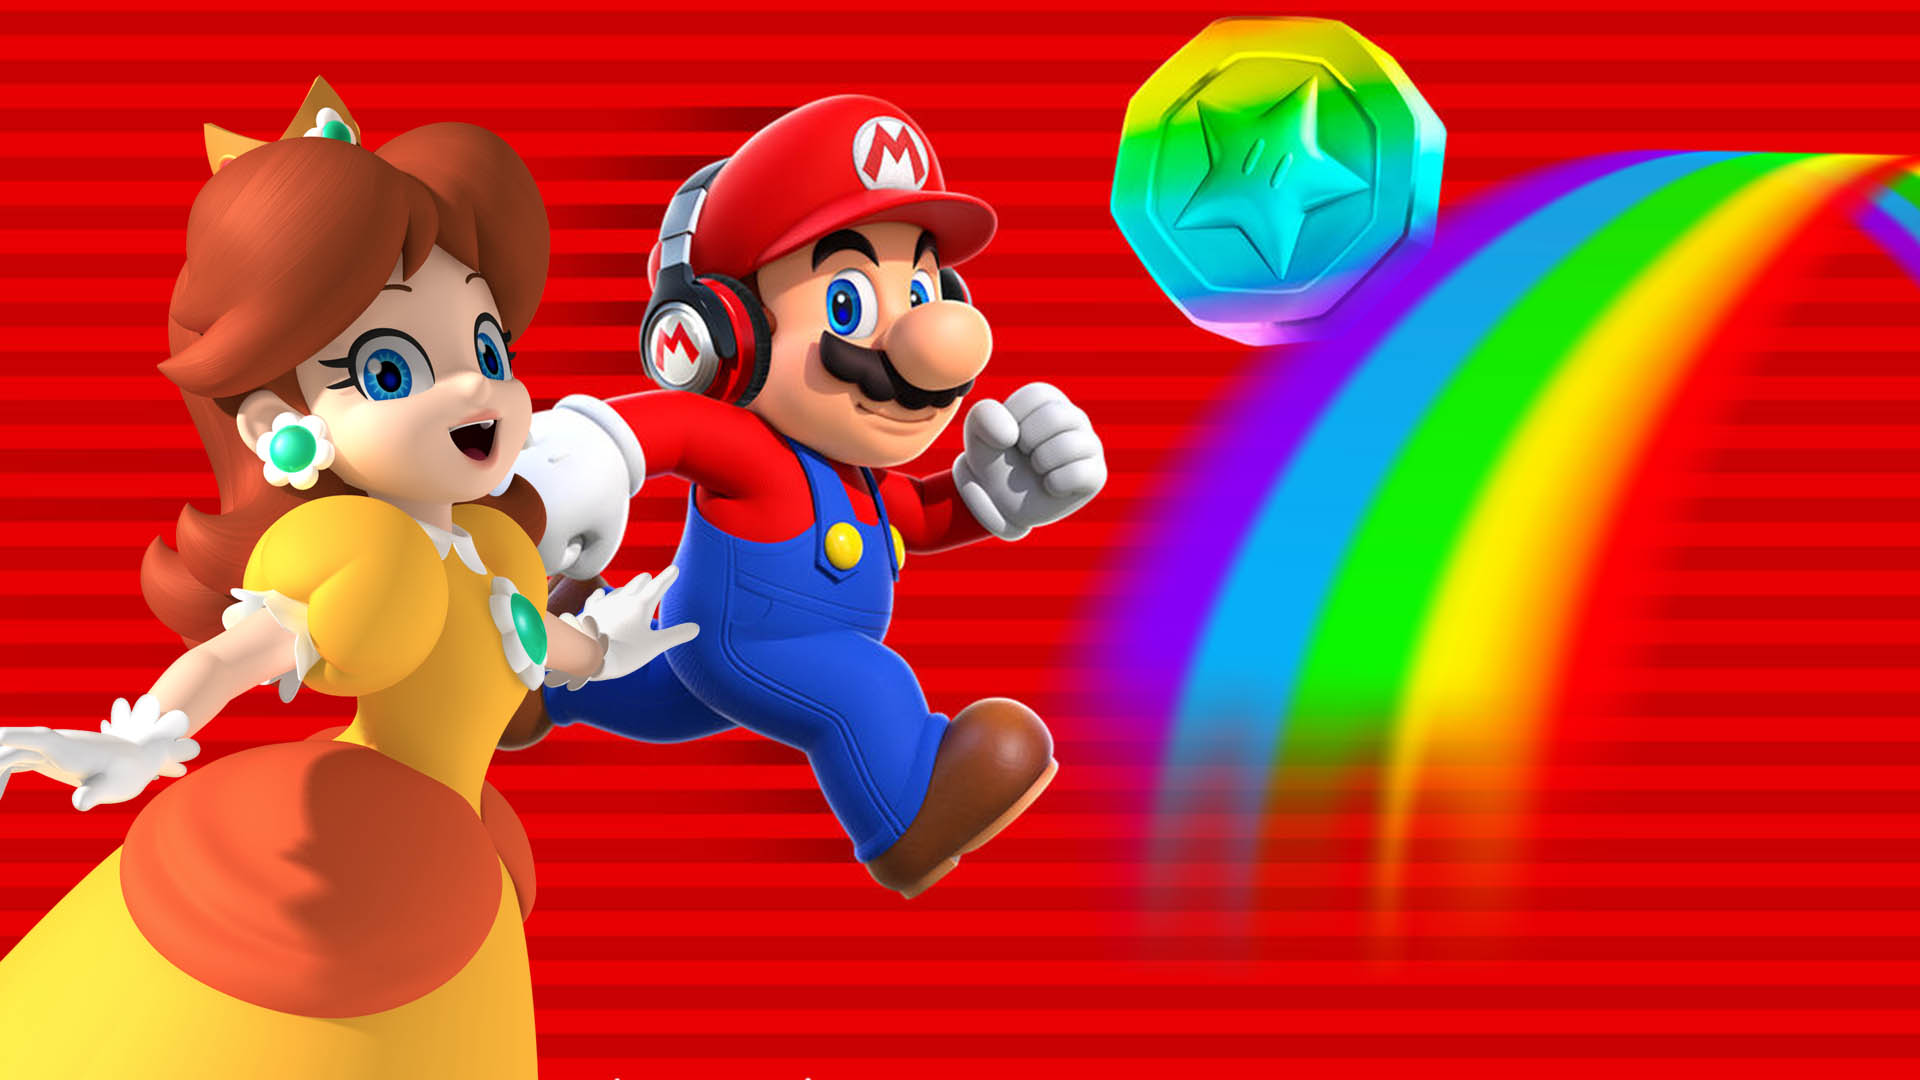 Nintendo Reportedly Seeking New Partners to Expand Mobile Game Development